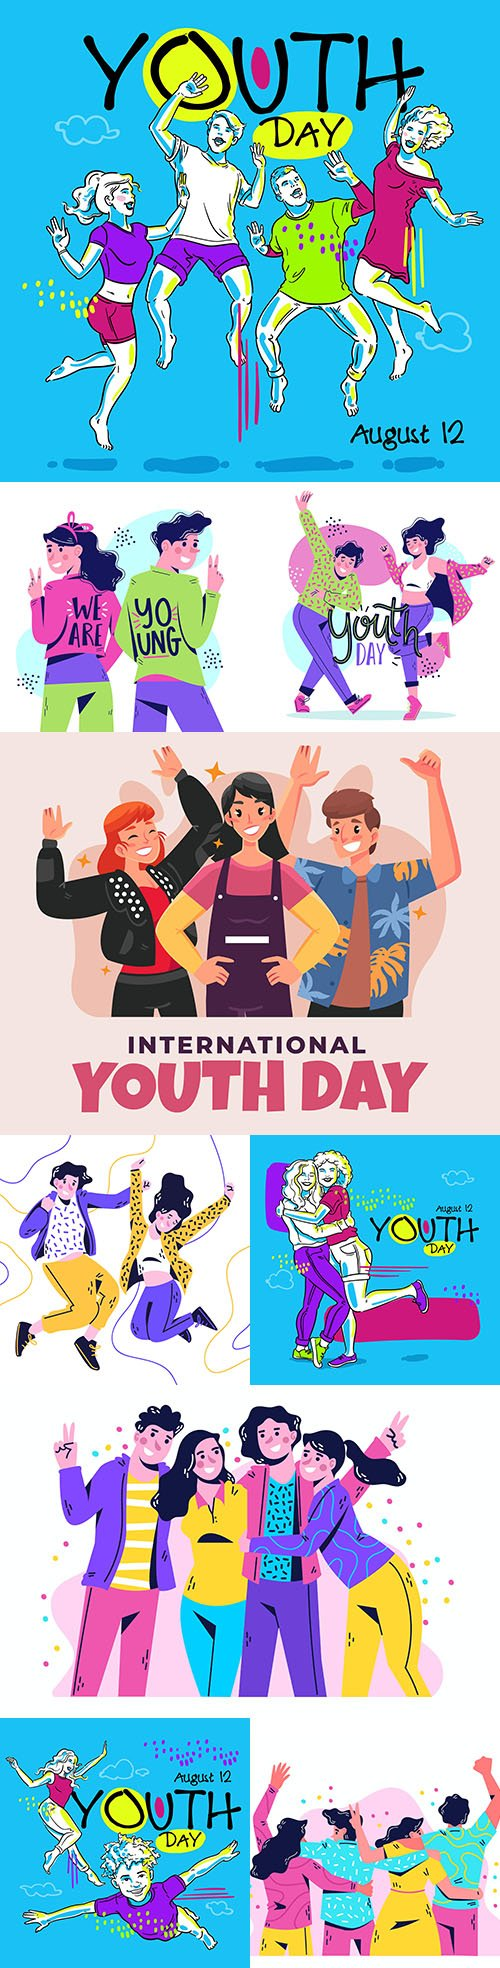 Youth Day people welcome and dance illustration